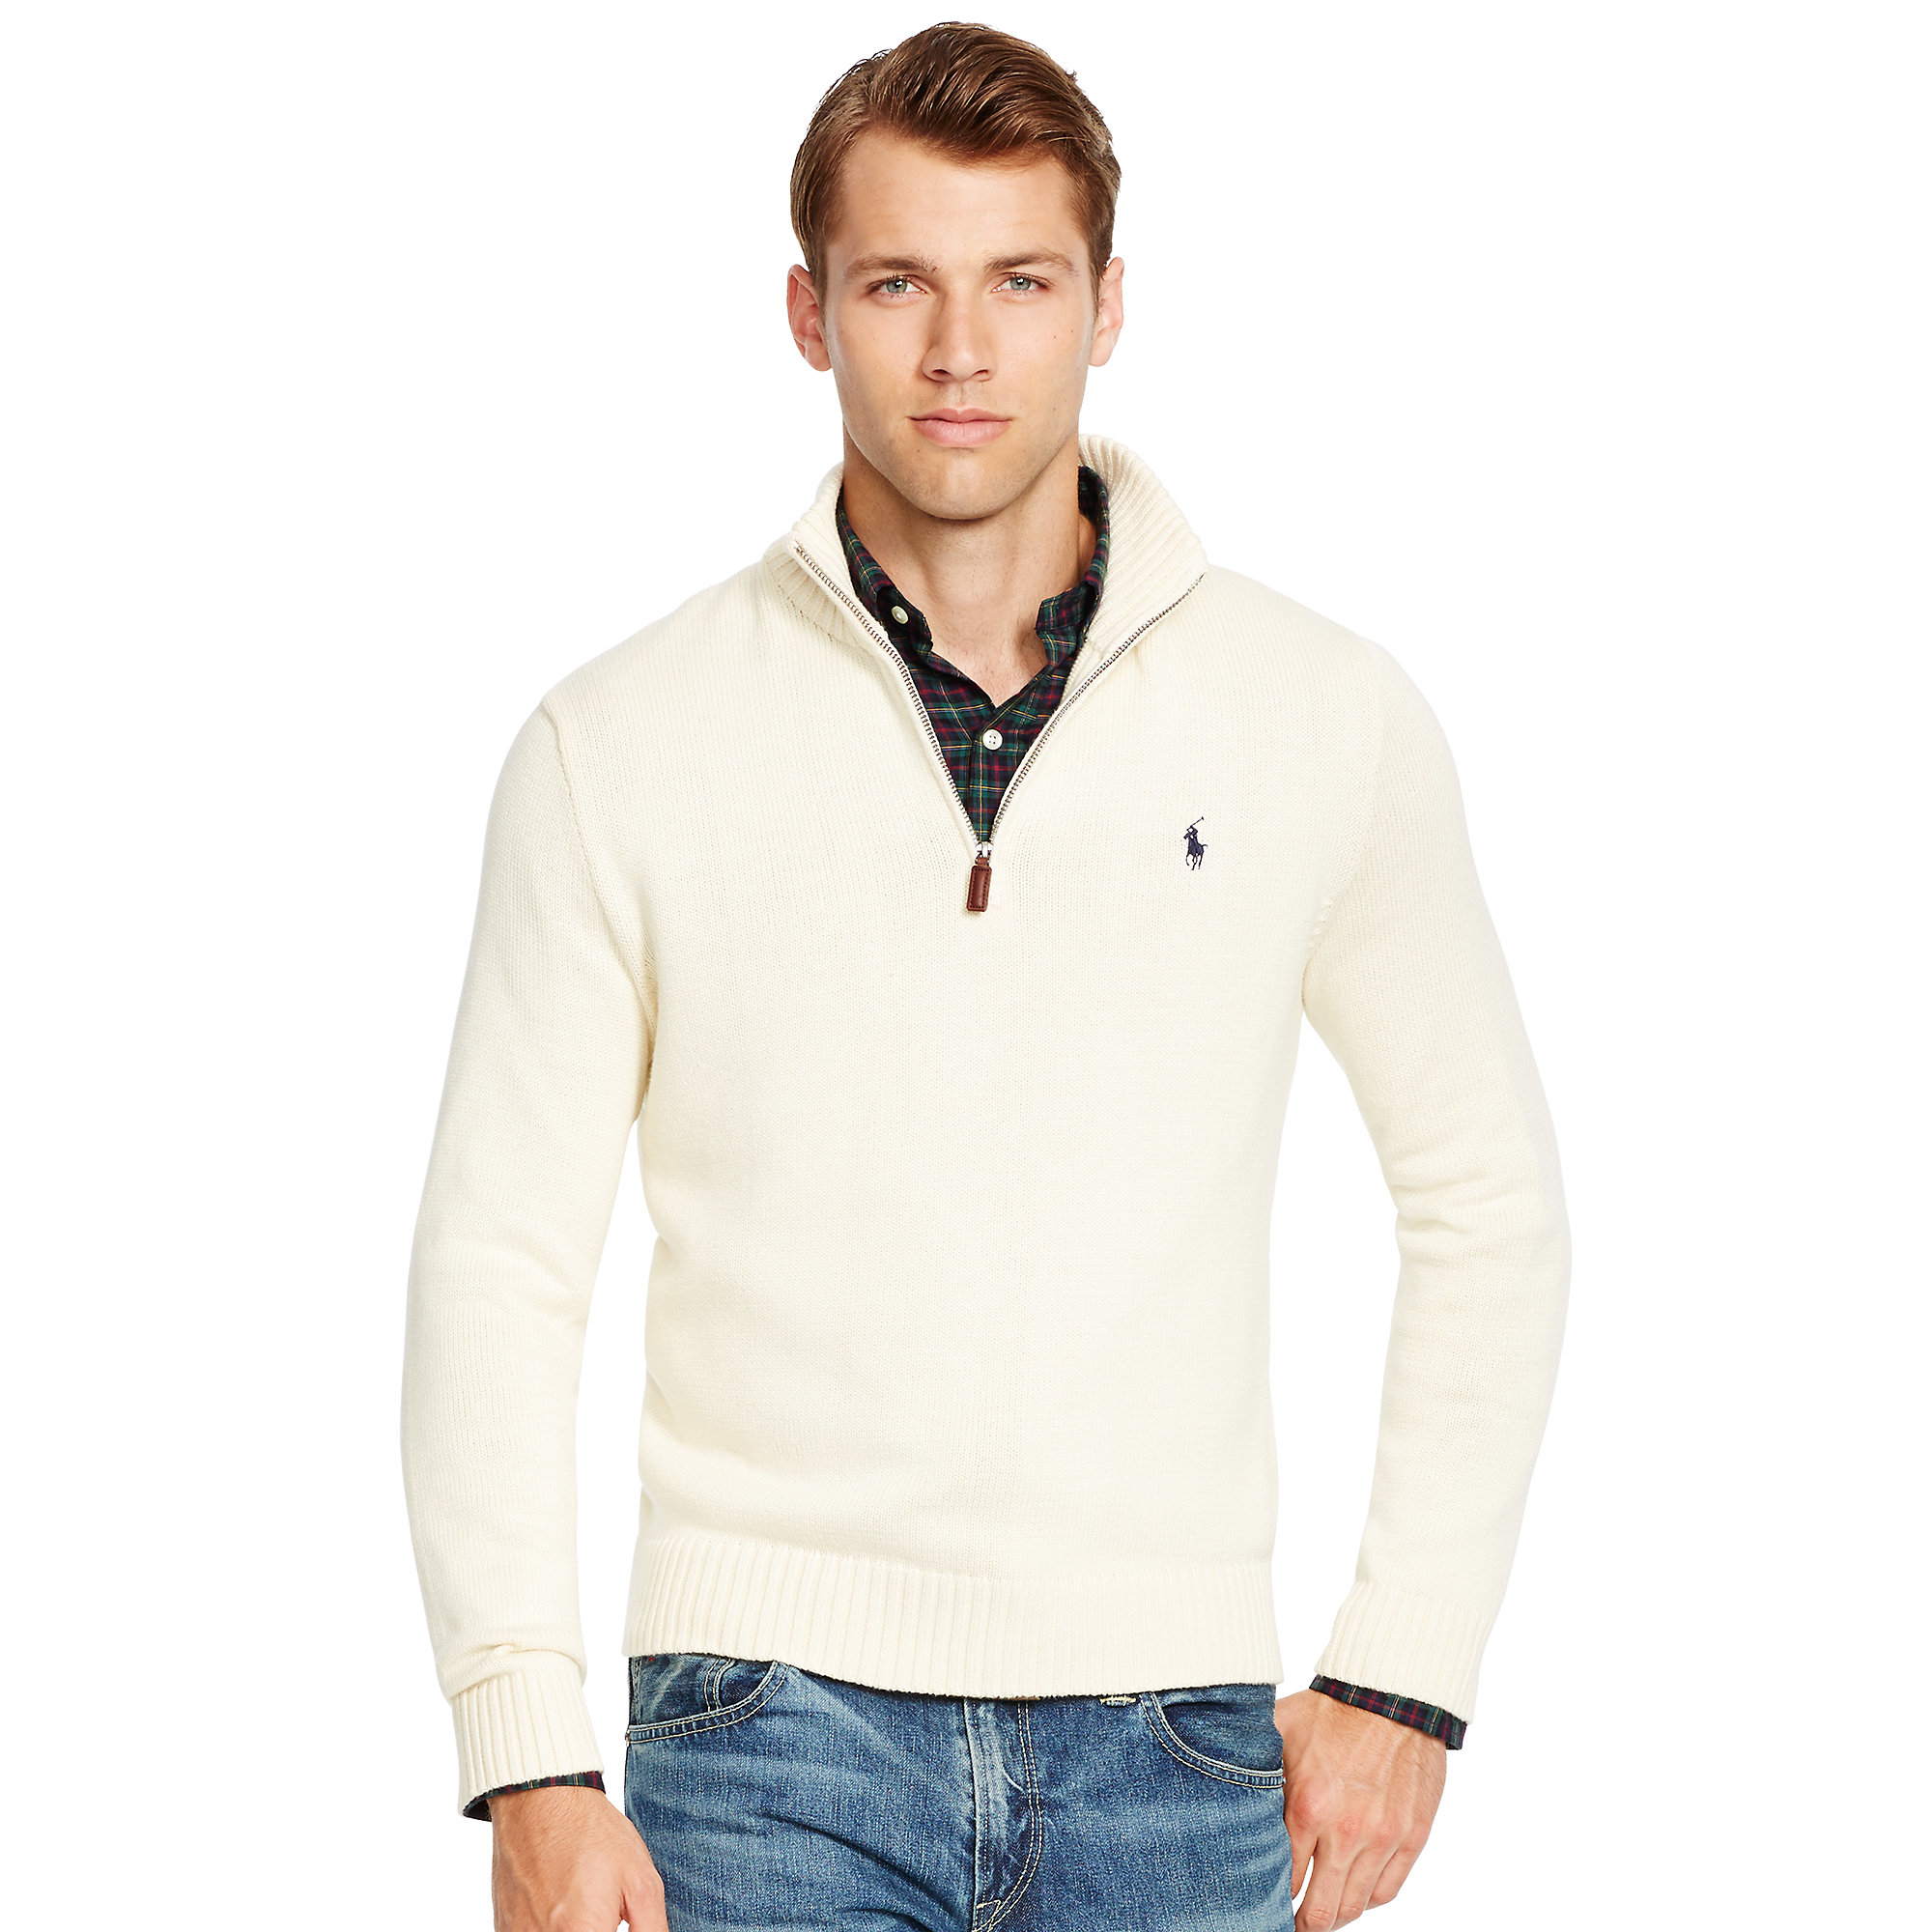 Shop for men's Half Zip online at Men's Wearhouse. Browse the latest Sweaters styles & selection for men from top brands & designers from the leader in men's apparel. Available in regular sizes and big & tall sizes. Enjoy FREE Shipping on orders over $99+!